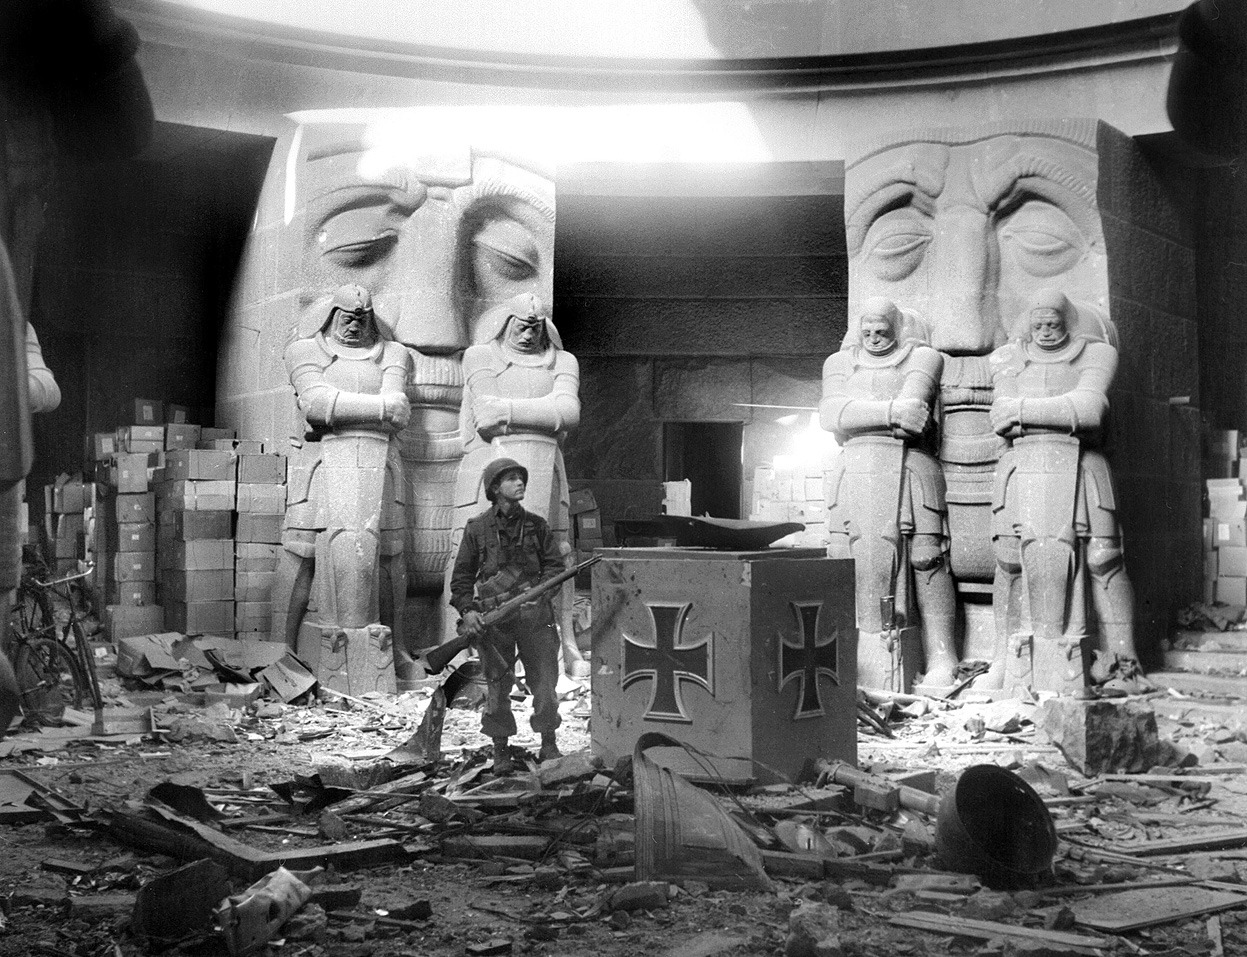 A U.S. soldier stands in the middle of rubble in the Monument of the Battle of the Nations in Leipzig after they attacked the city on April 18, 1945. The huge monument commemorating the defeat of Napoleon in 1813 was one of the last strongholds in the city to surrender. One hundred and fifty SS fanatics with ammunition and foodstuffs stored in the structure to last three months dug themselves in and were determined to hold out as long as their supplies. American First Army artillery eventually blasted the SS troops into surrender.